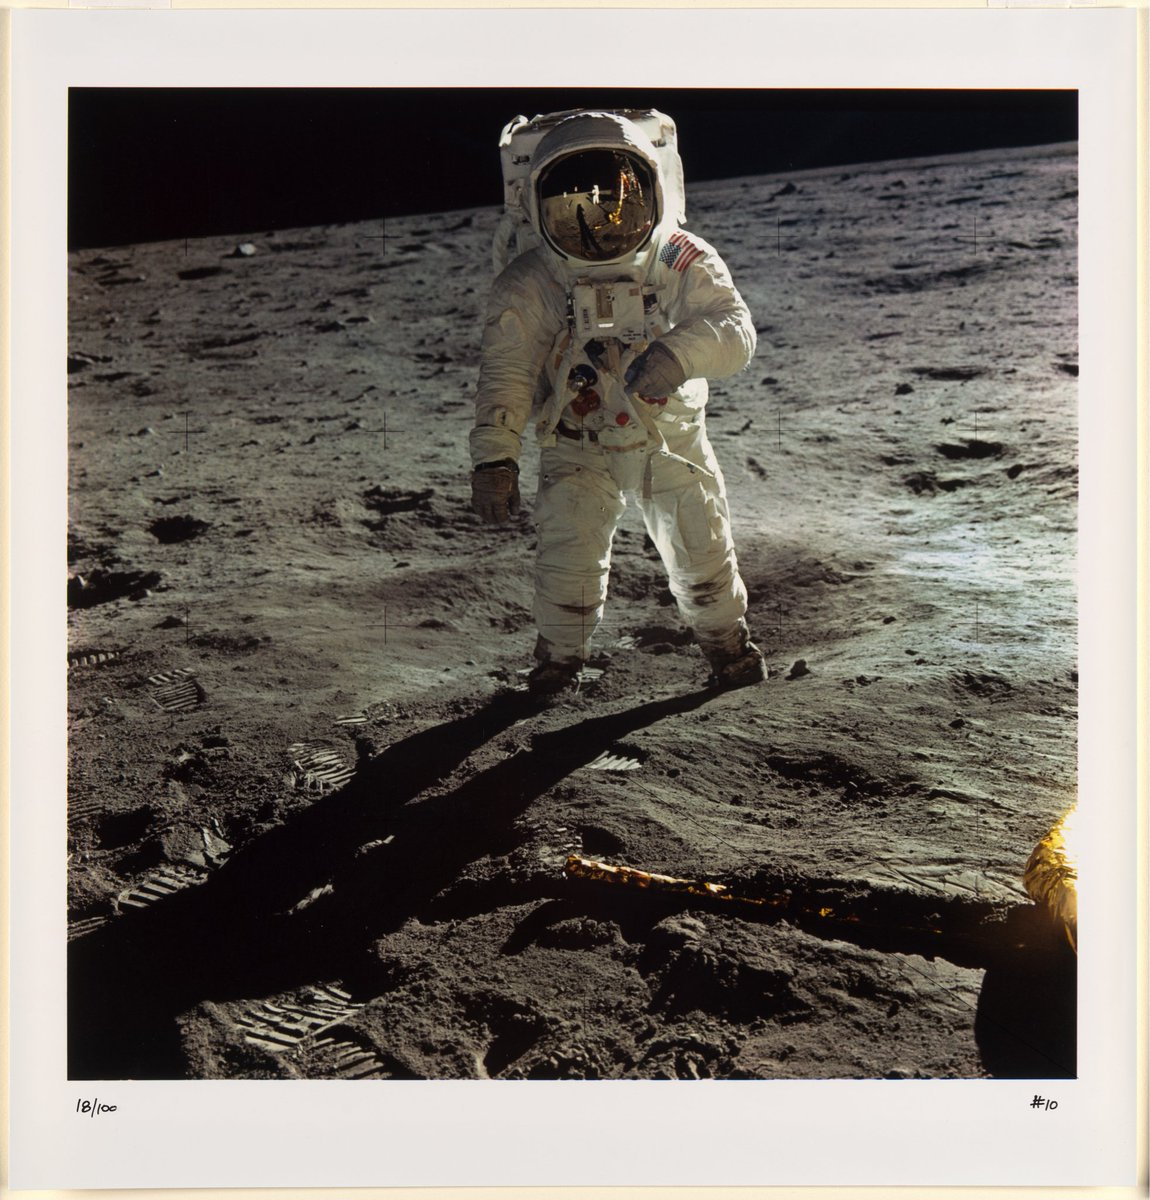 """Happy birthday to Apollo 11 astronaut Buzz Aldrin. Neil Armstrong's photo of @TheRealBuzz walking on the moon in 1969 will be among the works on display in """"Apollo's Muse: The Moon in the Age of Photography,"""" opening July 2. #MetApollosMuse #Apollo50 https://t.co/4OFSBPDRxg"""